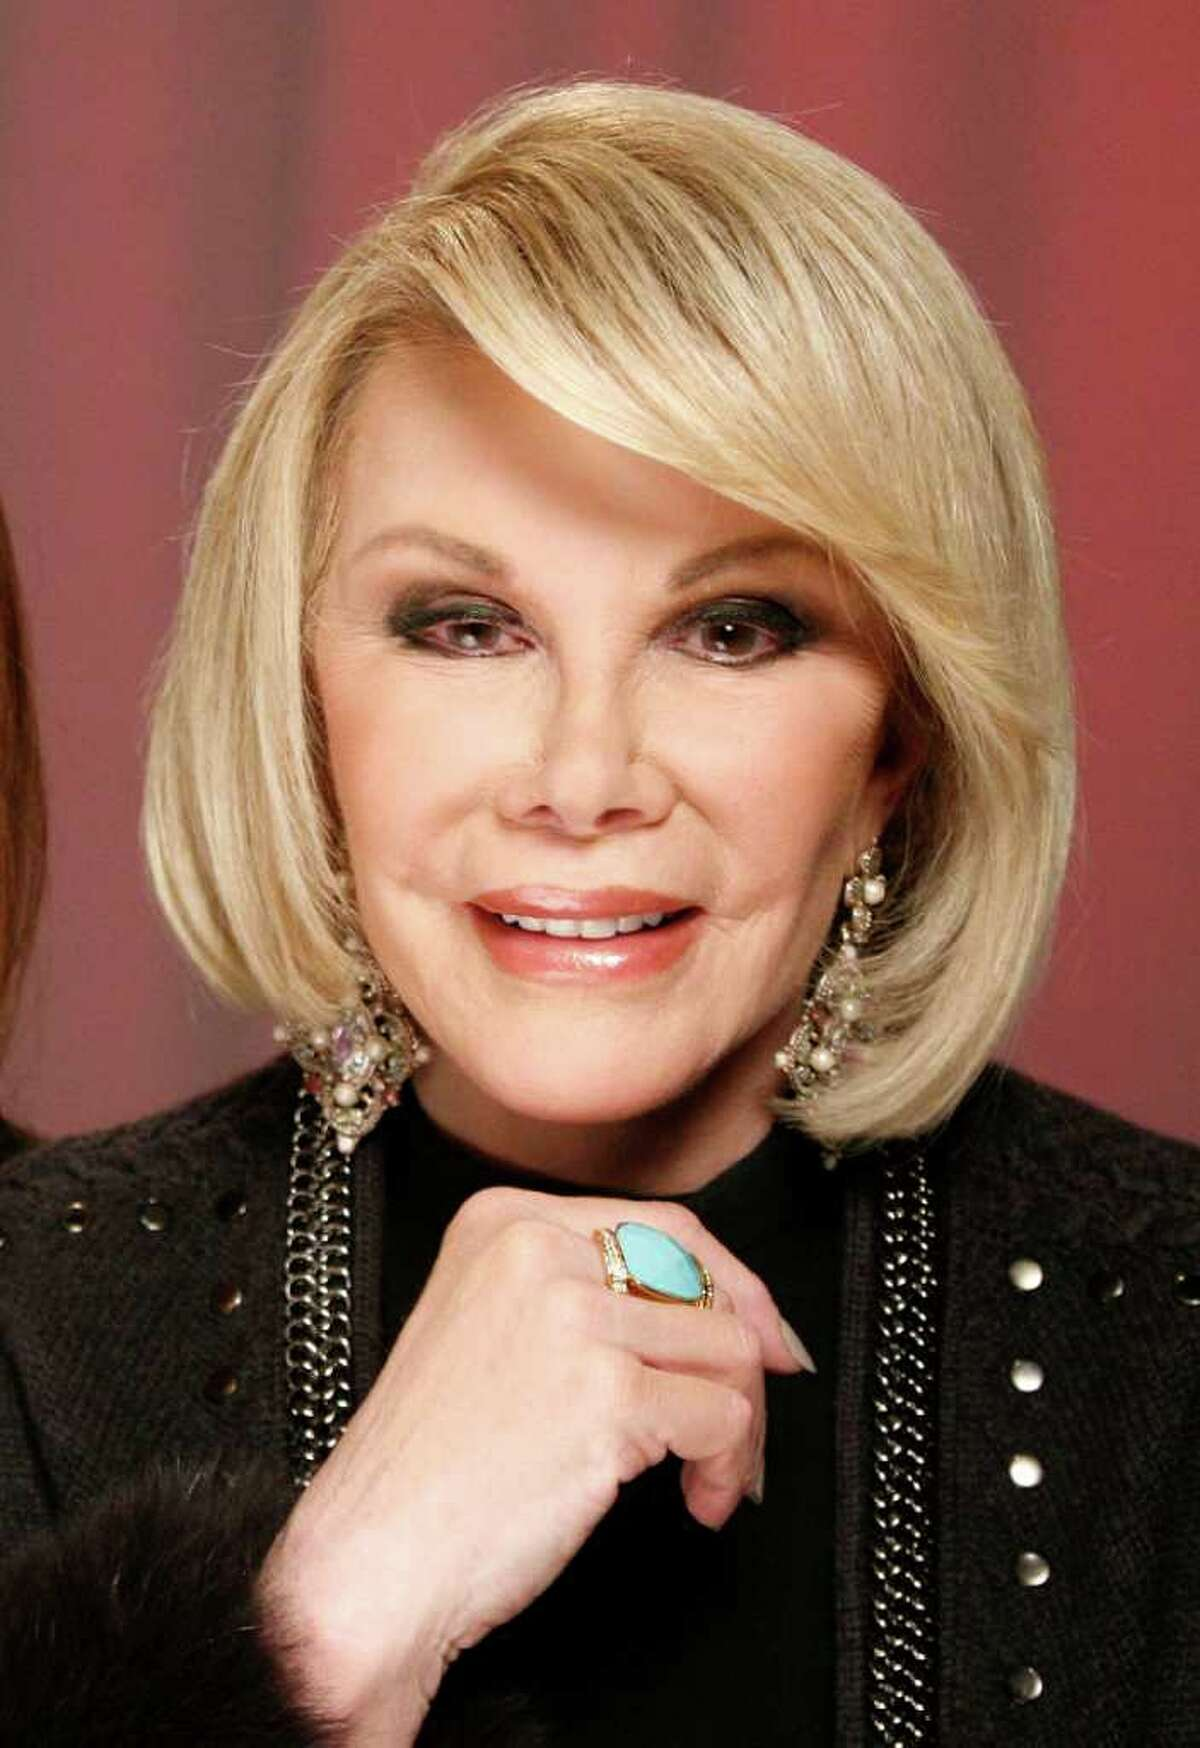 TV personality Joan Rivers in January. Rivers, along with Regis Philbin, Rhea Perlman and Kevin Nealon, will soon guest-star on the TV Land series,